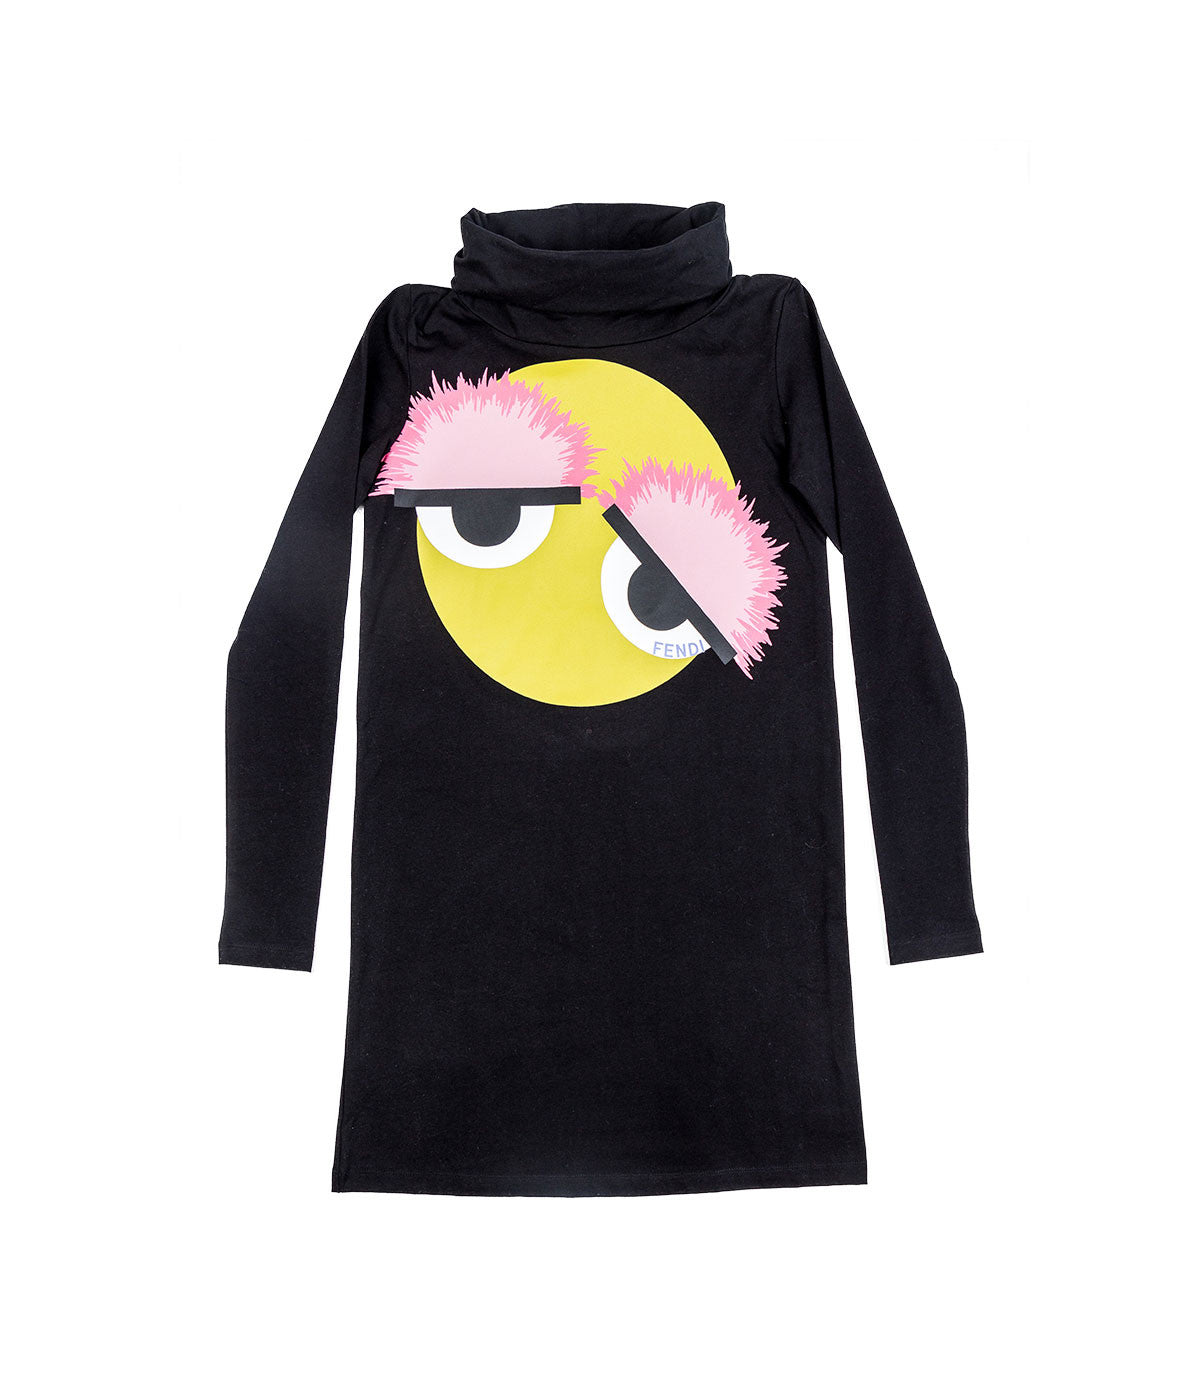 Kids Black Turtleneck Dress